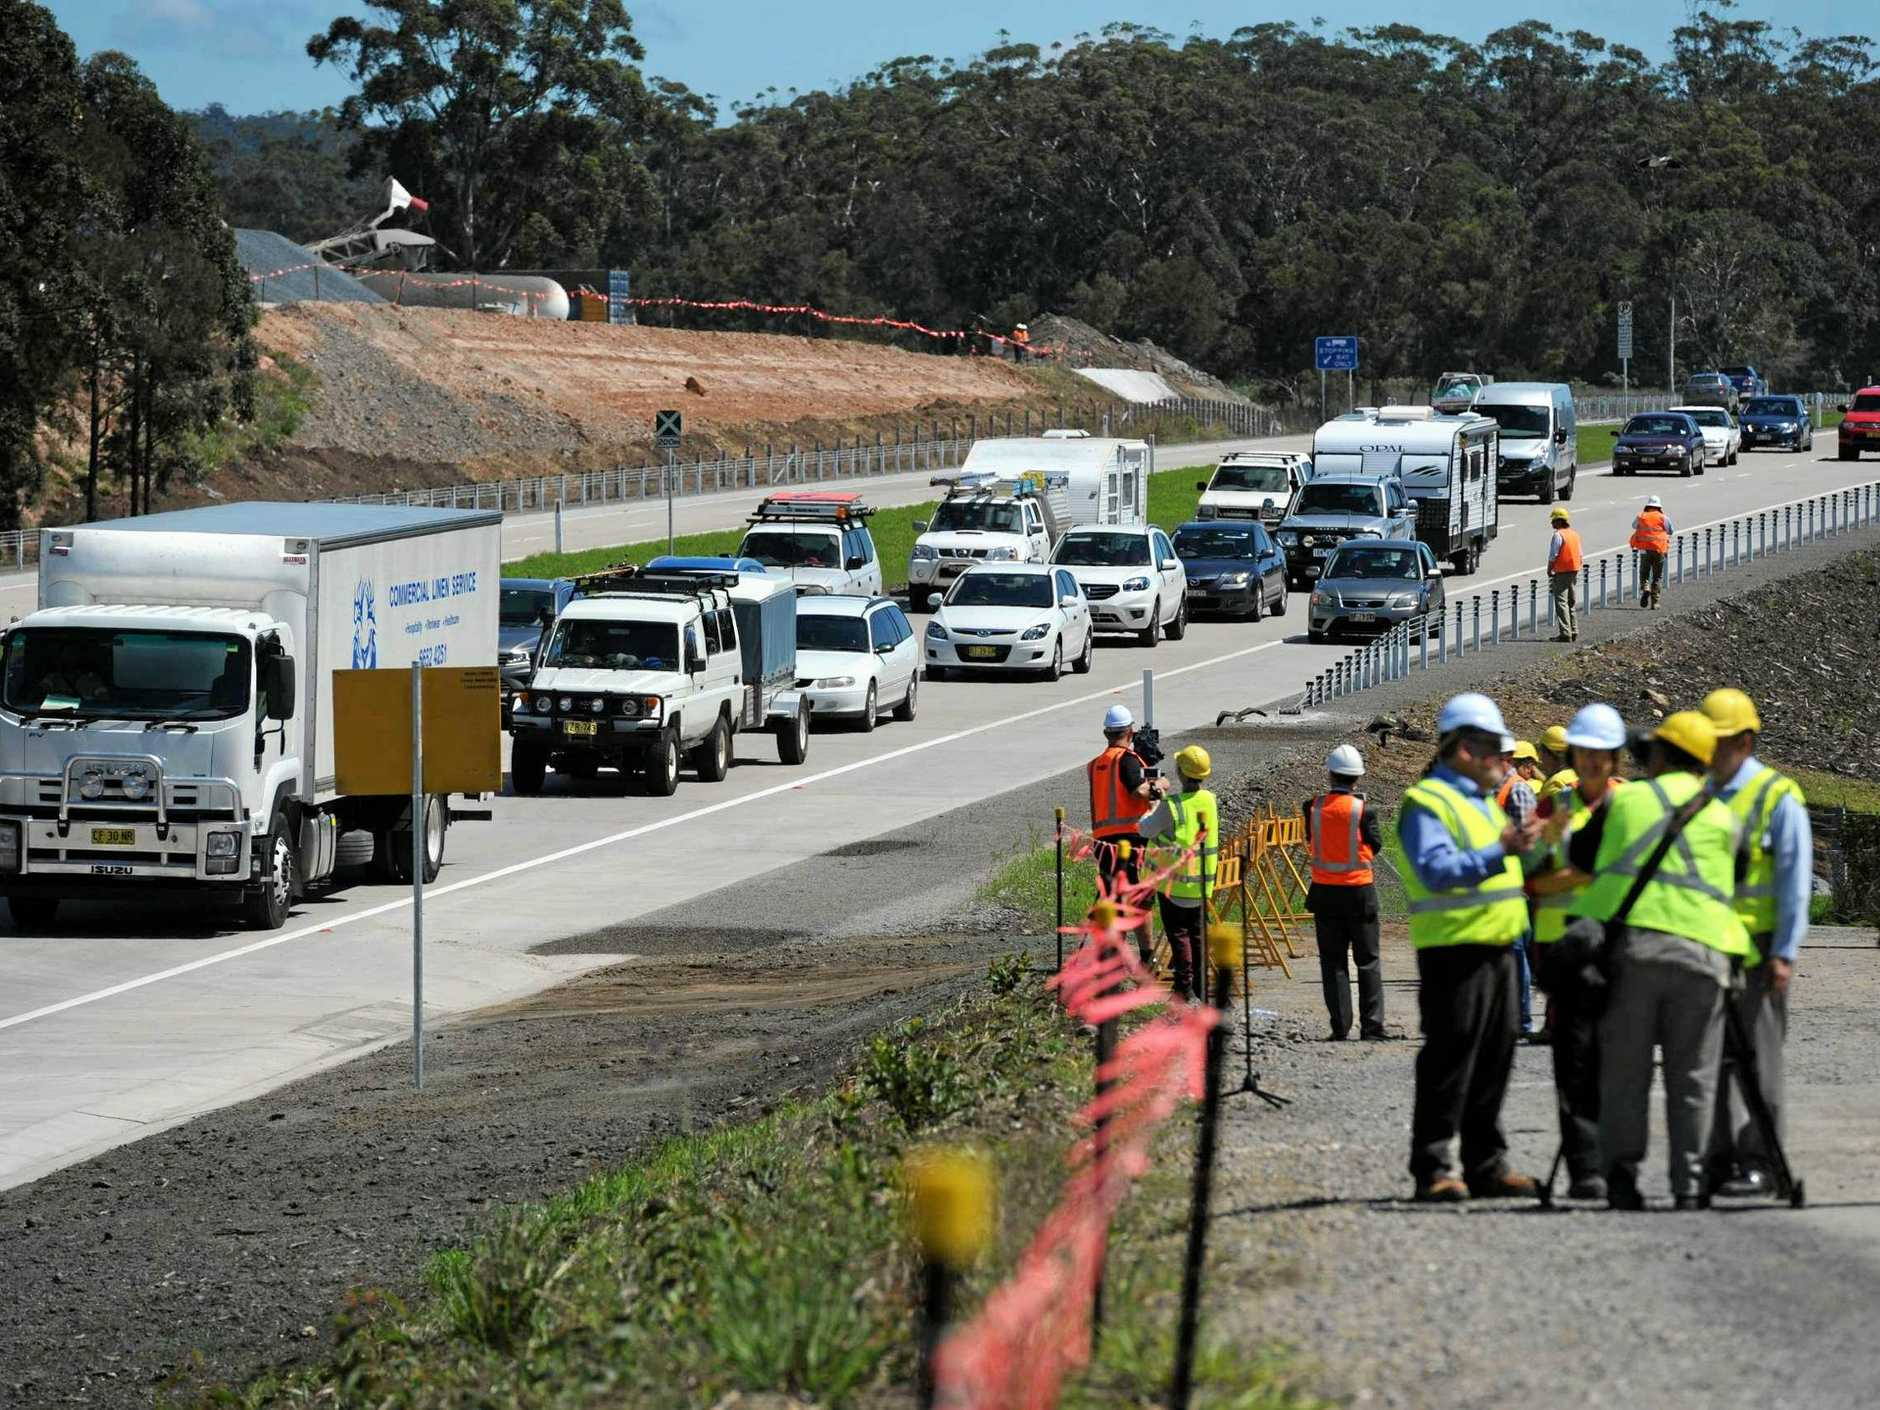 Work continues on the upgrade to the Pacific Highway between Woolgoolga and Ballina.